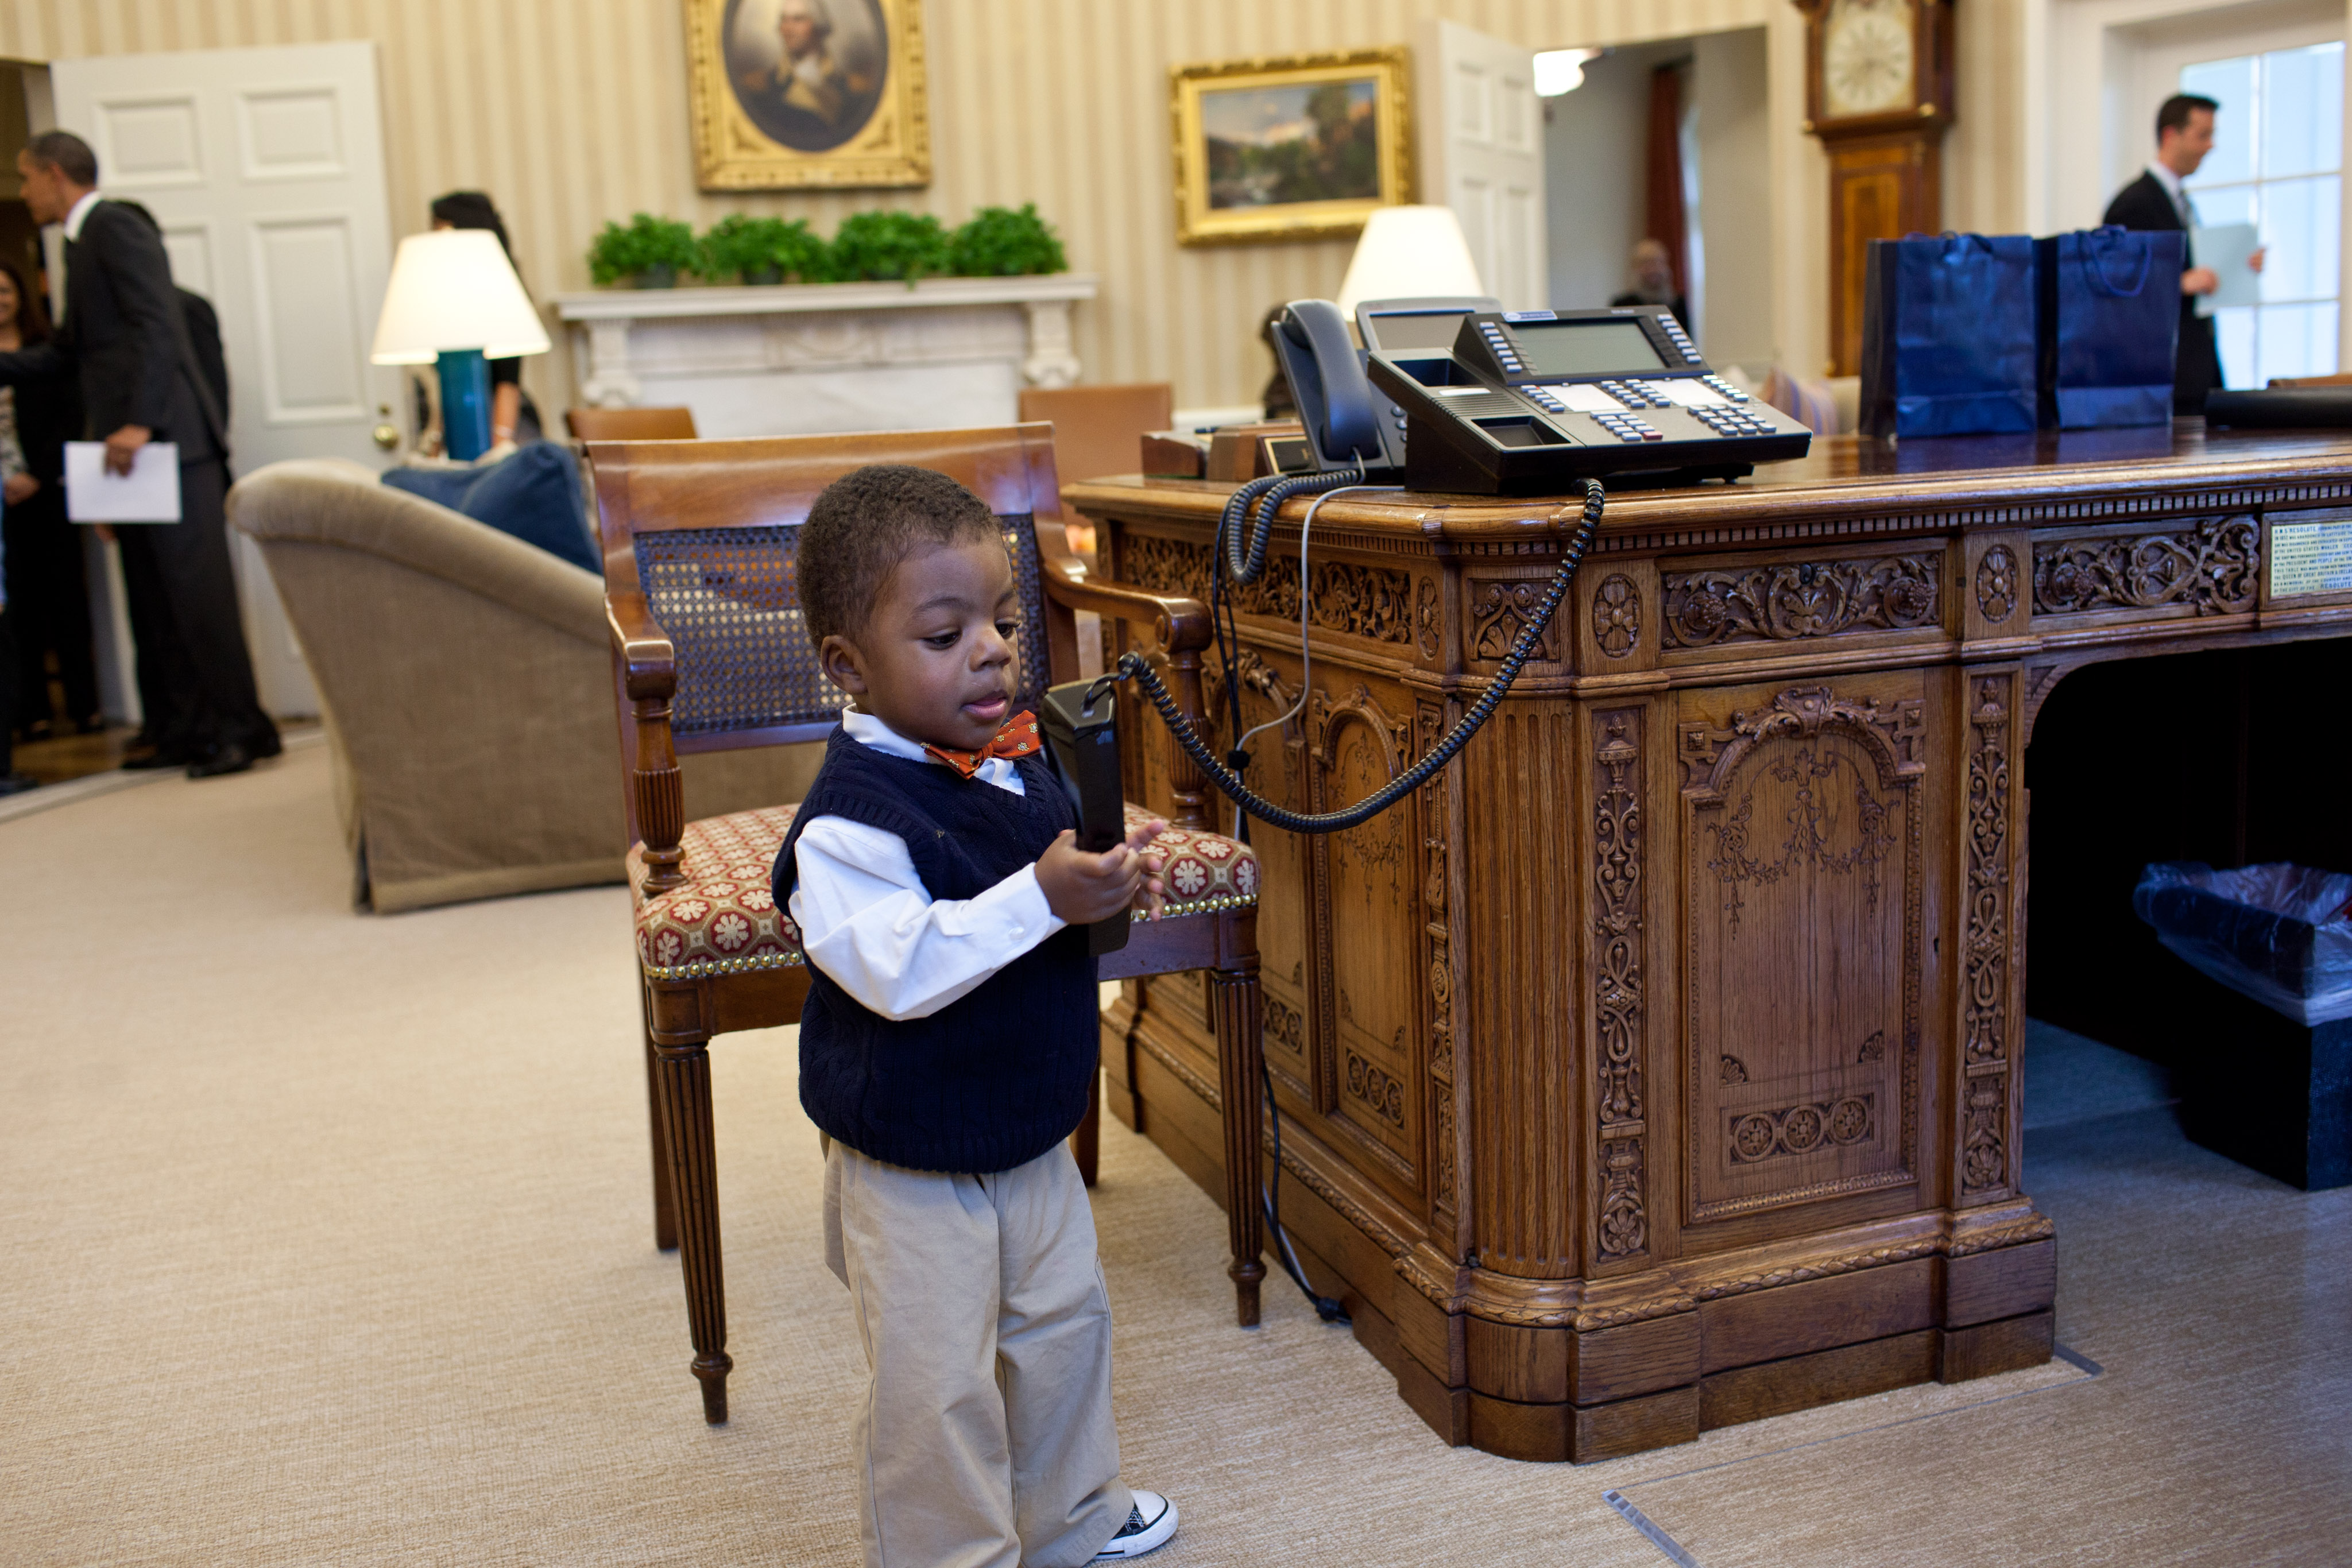 File:Child playing with Oval Office telephone.jpg ...